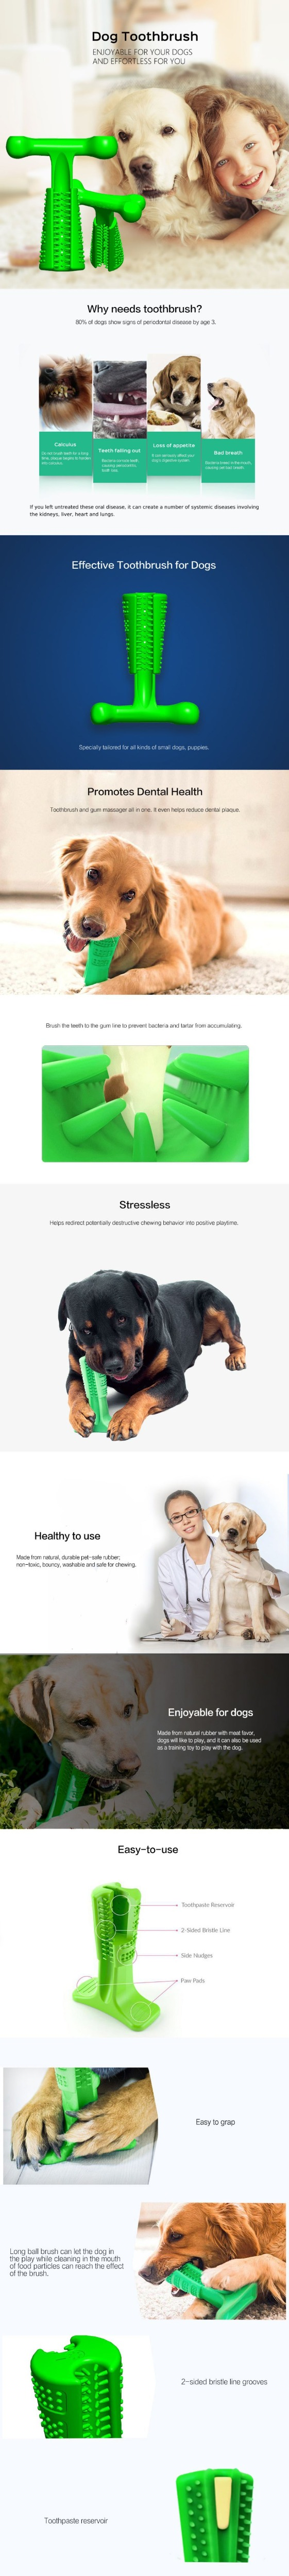 World's Most Effective Doggies Toothbrush